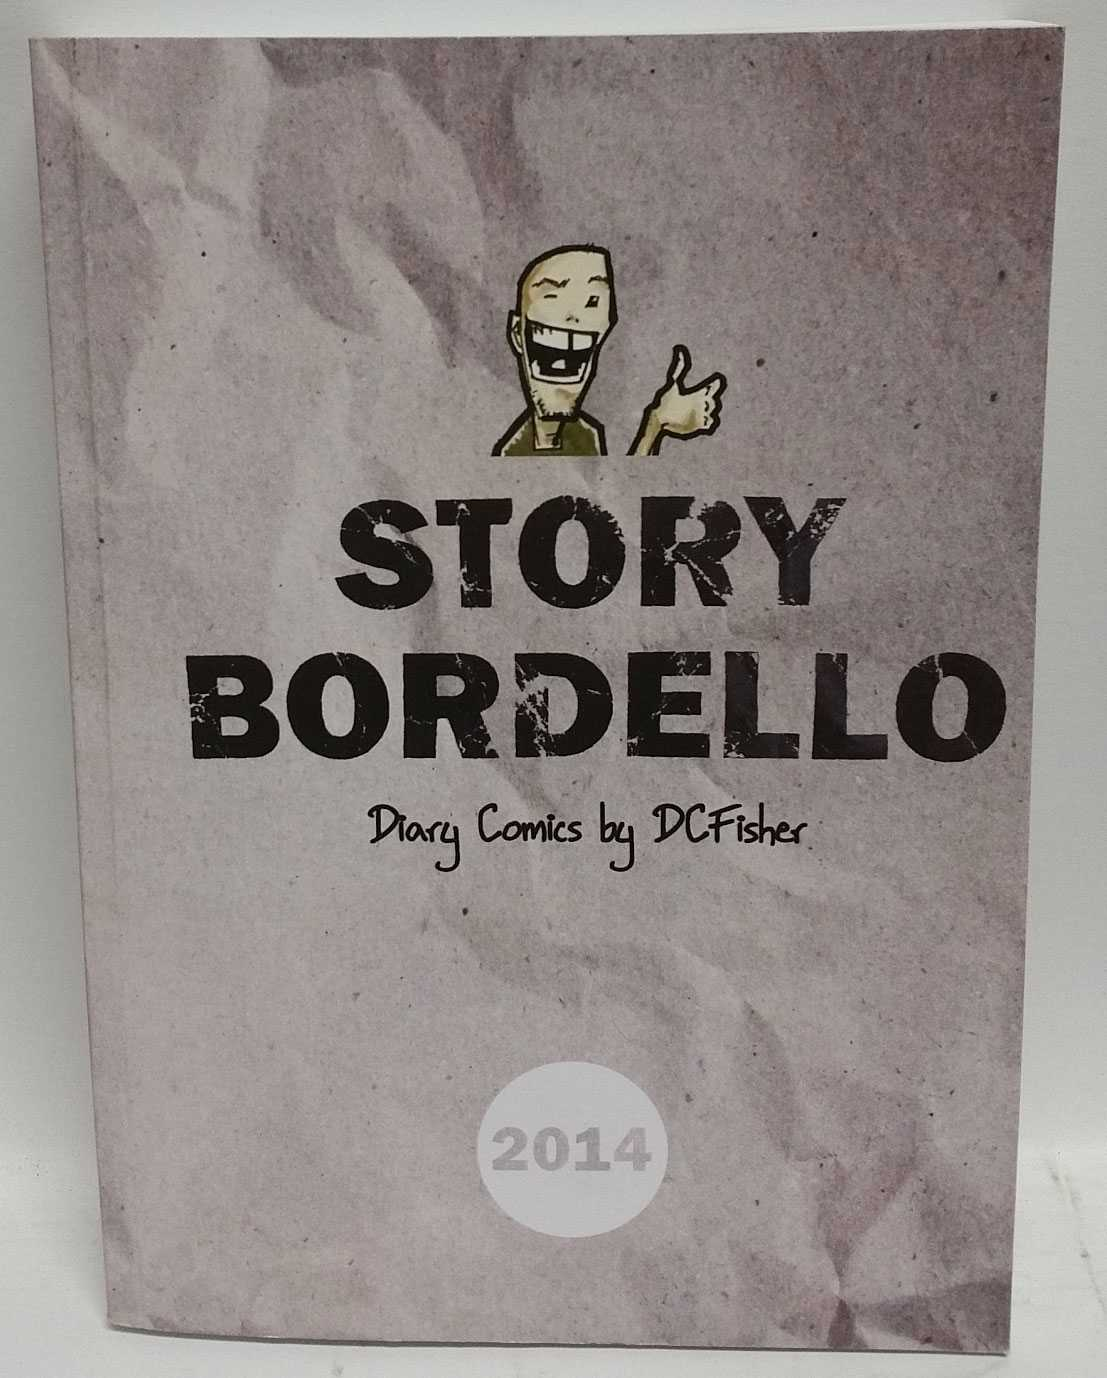 Story Bordello: Diary Comics by DCFisher 2014, Darren Fisher